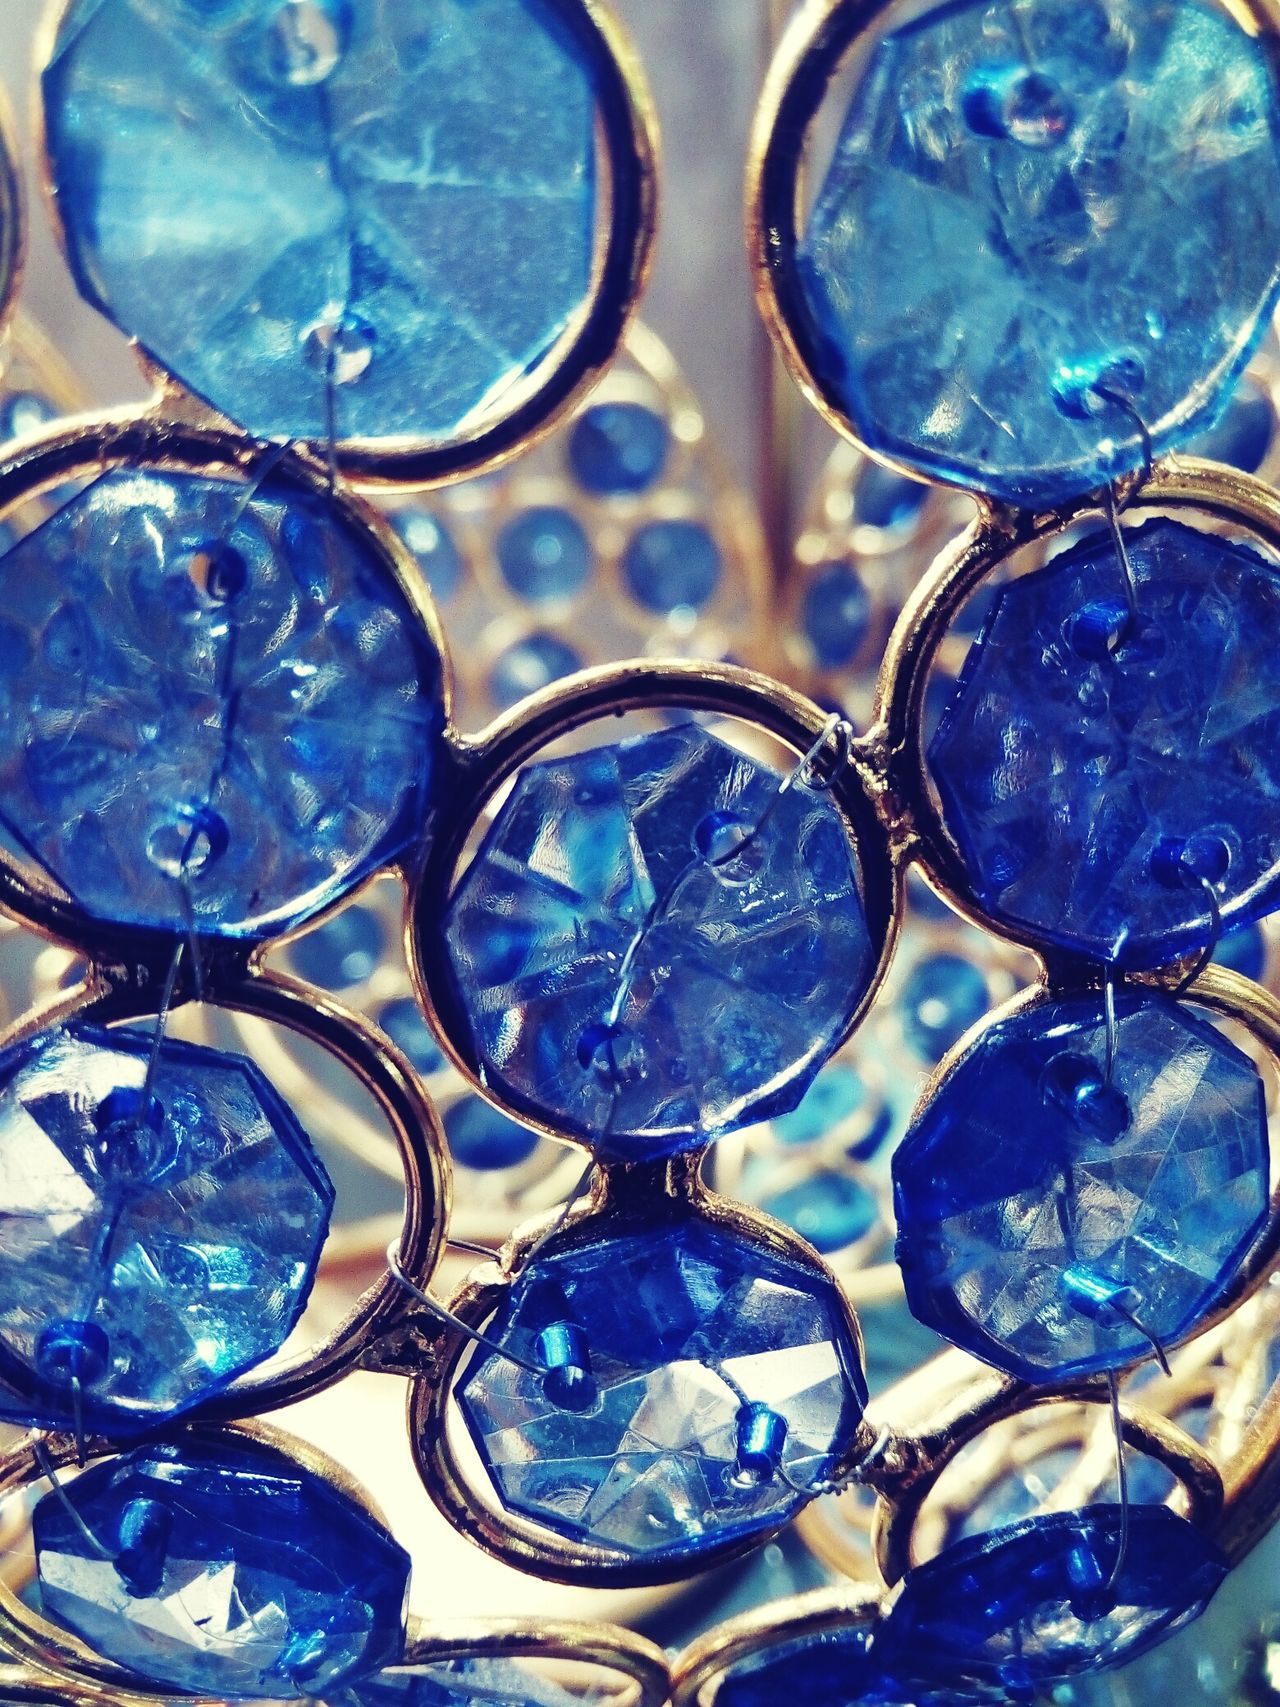 Full Frame Backgrounds Close-up Pattern No People Indoors  Day From My Point Of View EyeEmBestPics Glass Art Glass Objects  Showpiece Gift Shop Pattern, Texture, Shape And Form Bubbles ♥ Artistic Photo Artistic Photography Best Of EyeEm Simple Photography SimpleyetBeautiful Art Photography EyeEm Gallery Beauty In Ordinary Things Close Up Art Is Everywhere